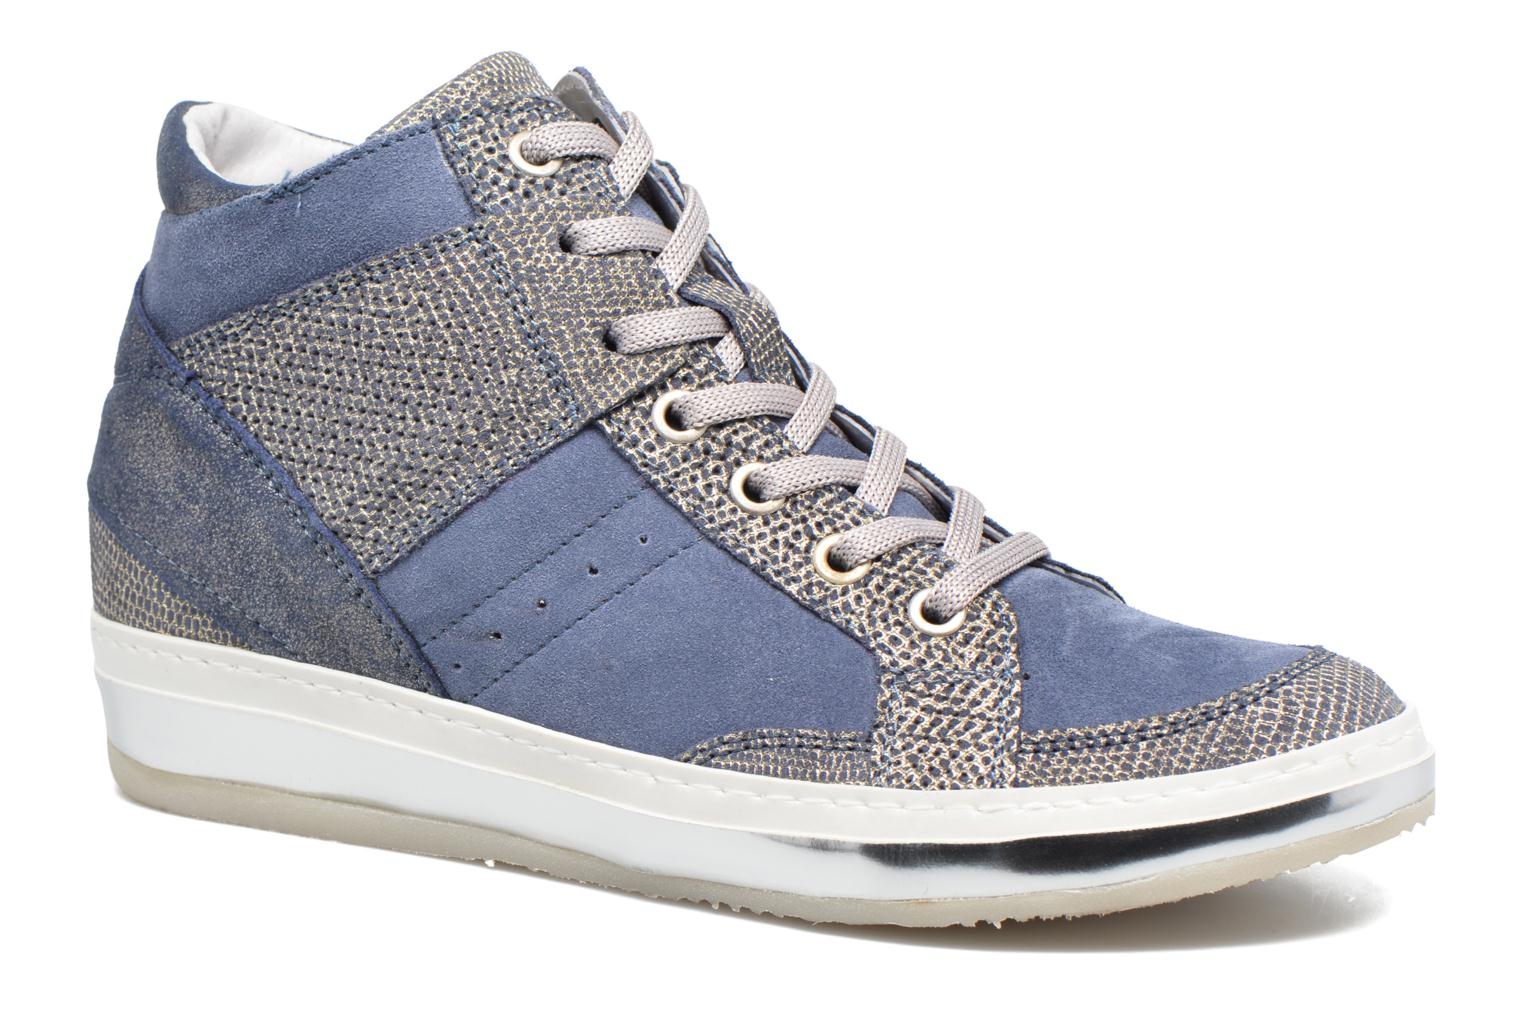 Marques Chaussure femme Khrio femme Calista Maryland Jeans + Saio Jeans